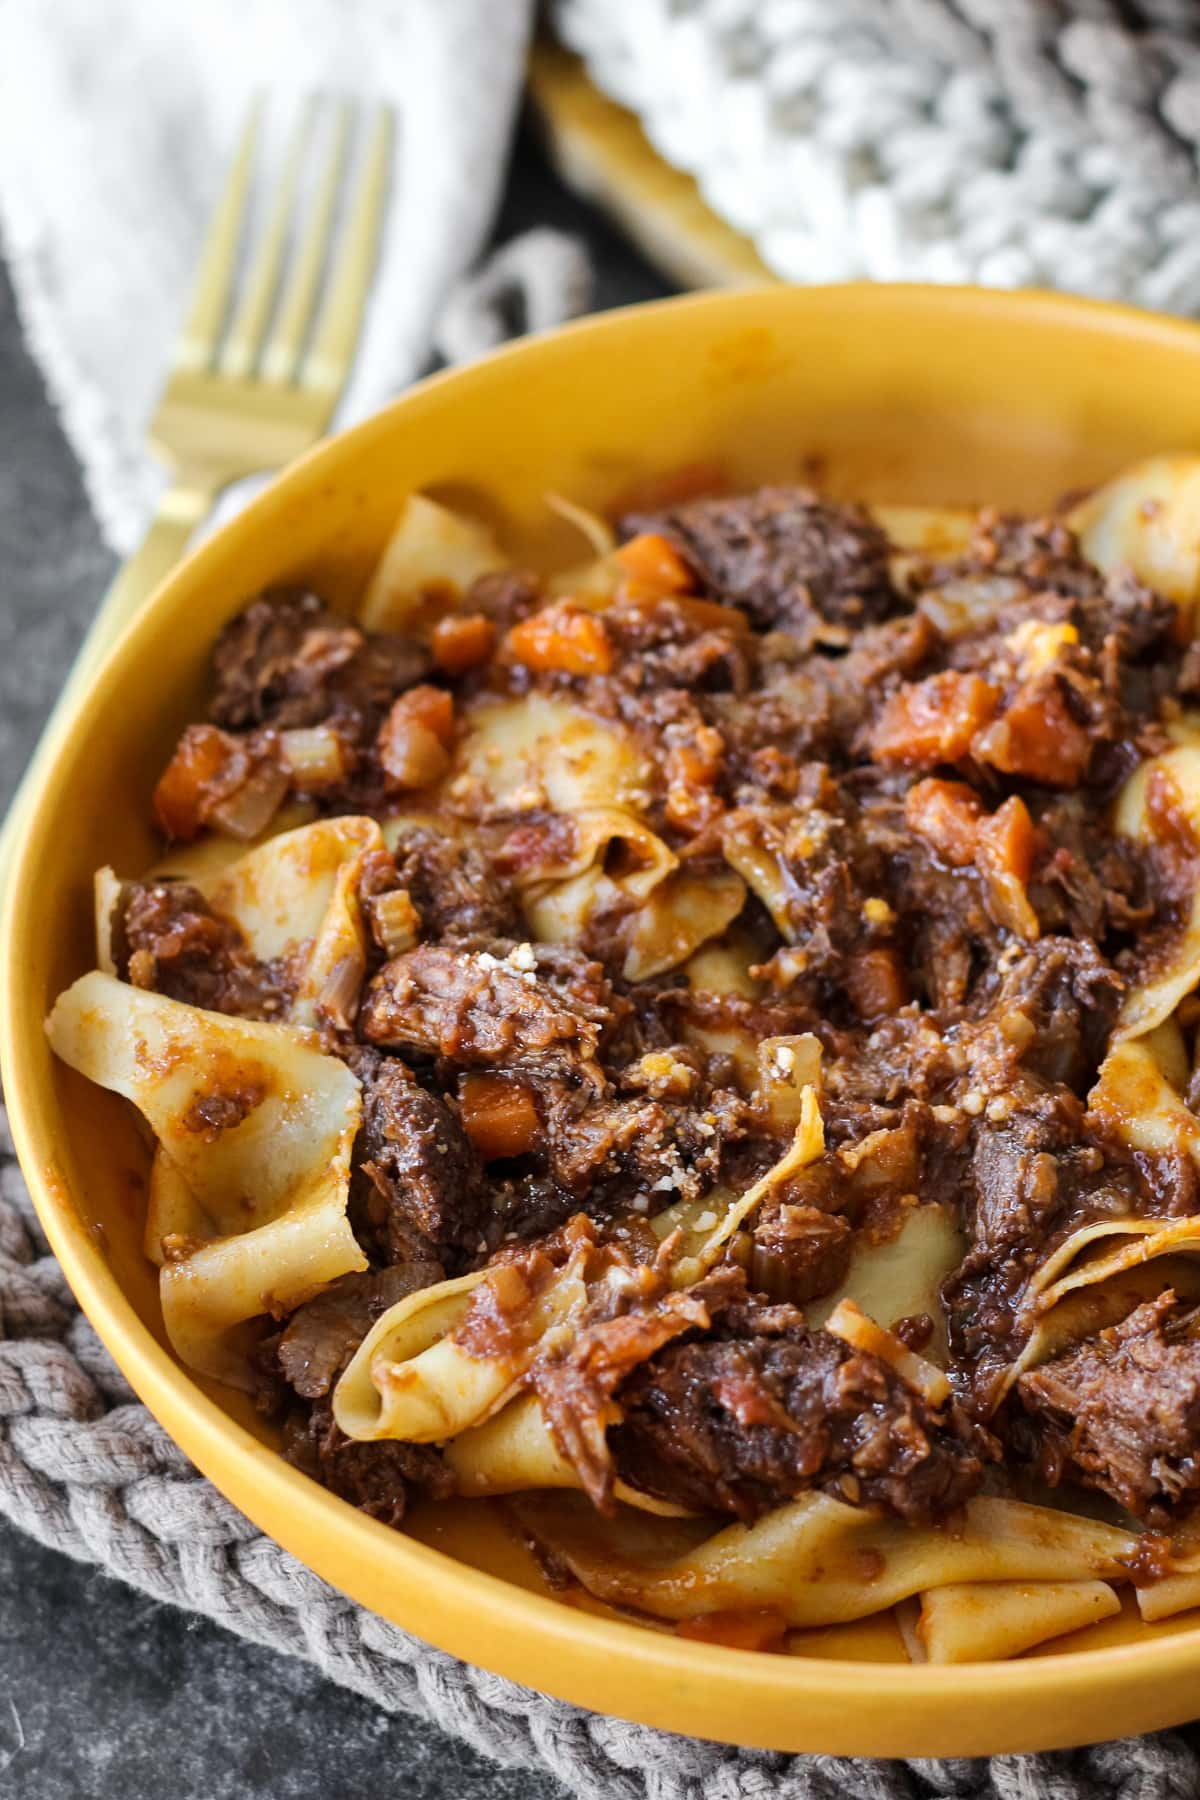 a close up view of half of a yellow bowl filled with beef ragu over pappardelle pasta